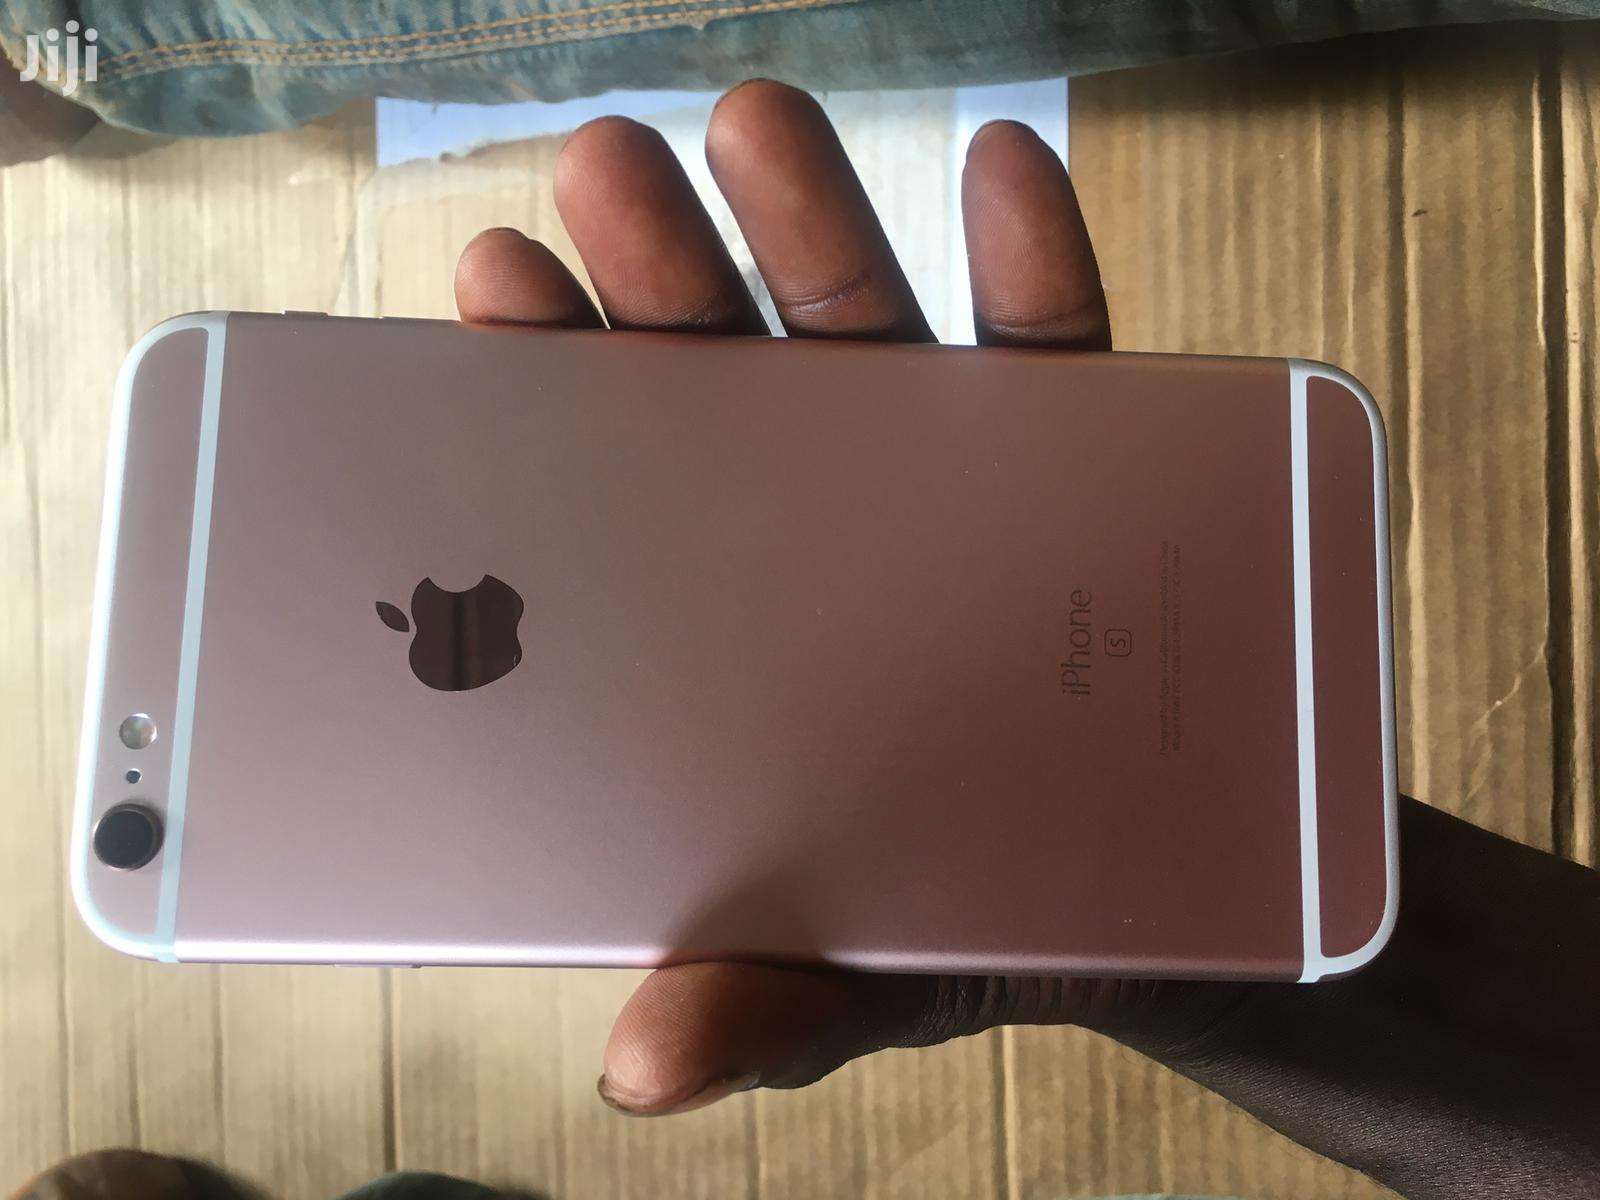 Apple iPhone 6s Plus 64 GB Gold | Mobile Phones for sale in Achimota, Greater Accra, Ghana